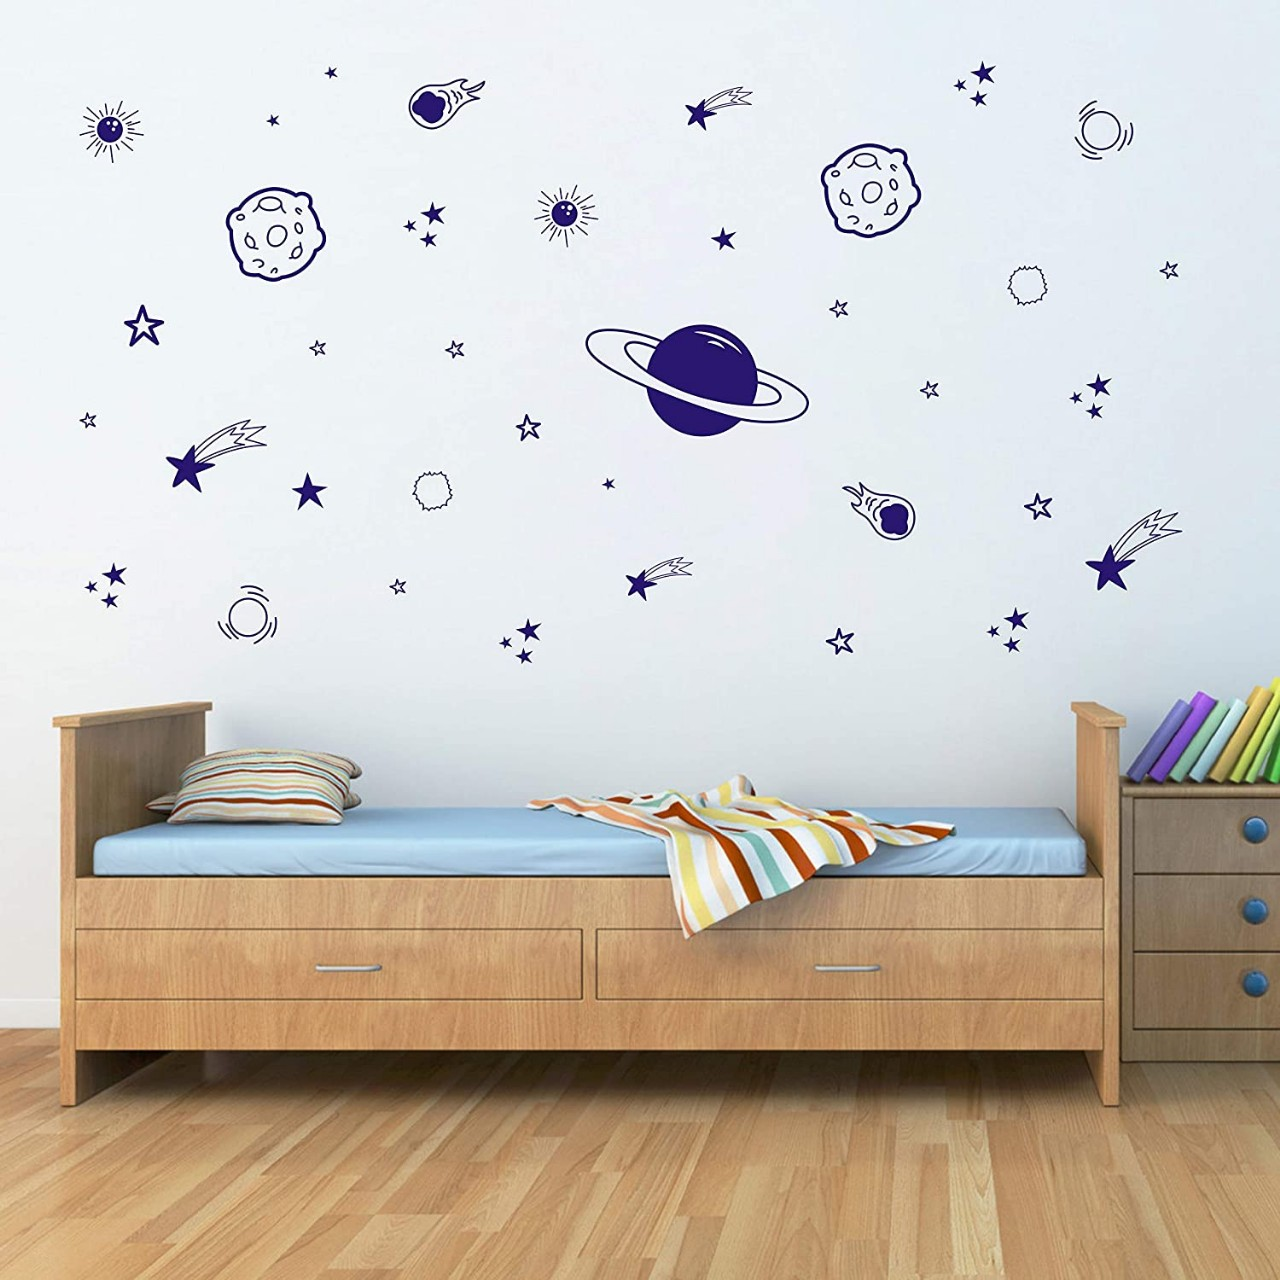 Planet Wall Decal, Boys Room Decor, Outer Space Wall Decals, Star Wall Stickers, Vinyl Wall Decals